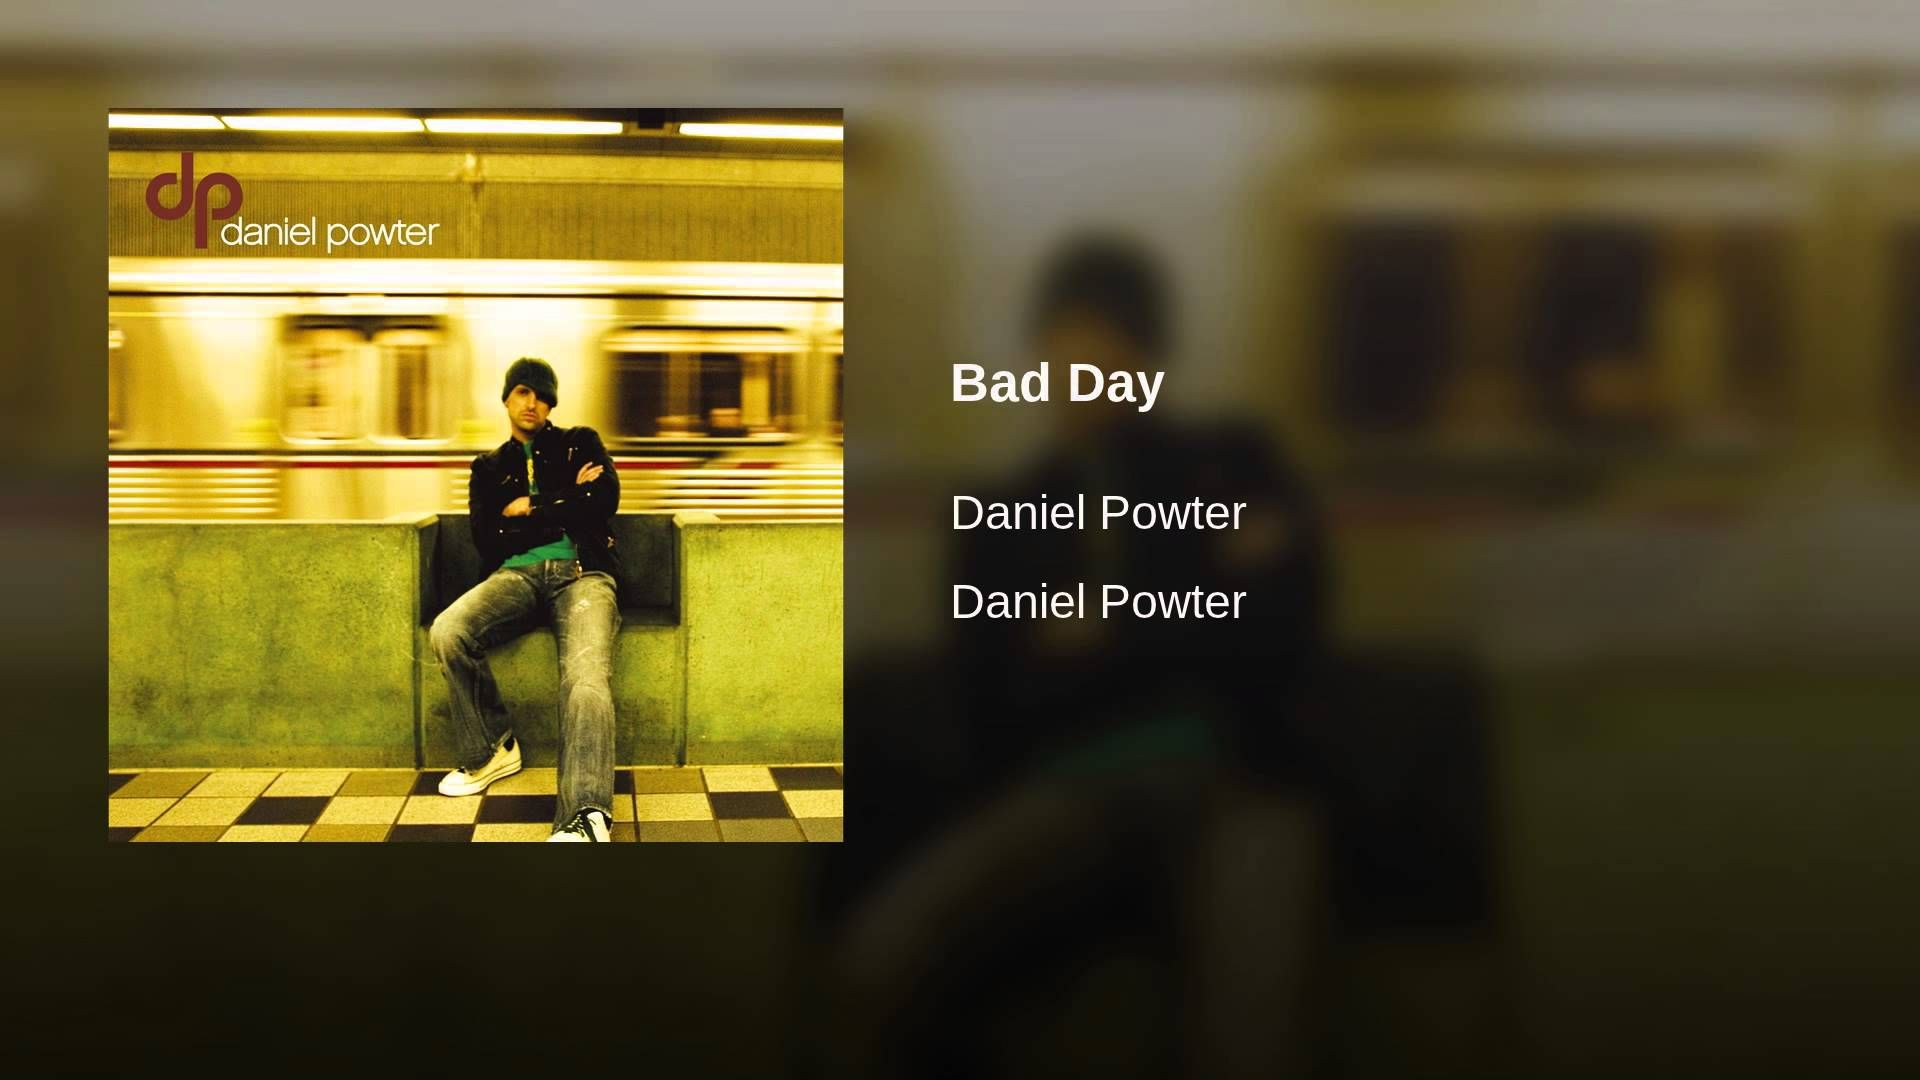 Bad Day Youtube With Images Daniel Powter Bad Day Bad Day You Oughta Know